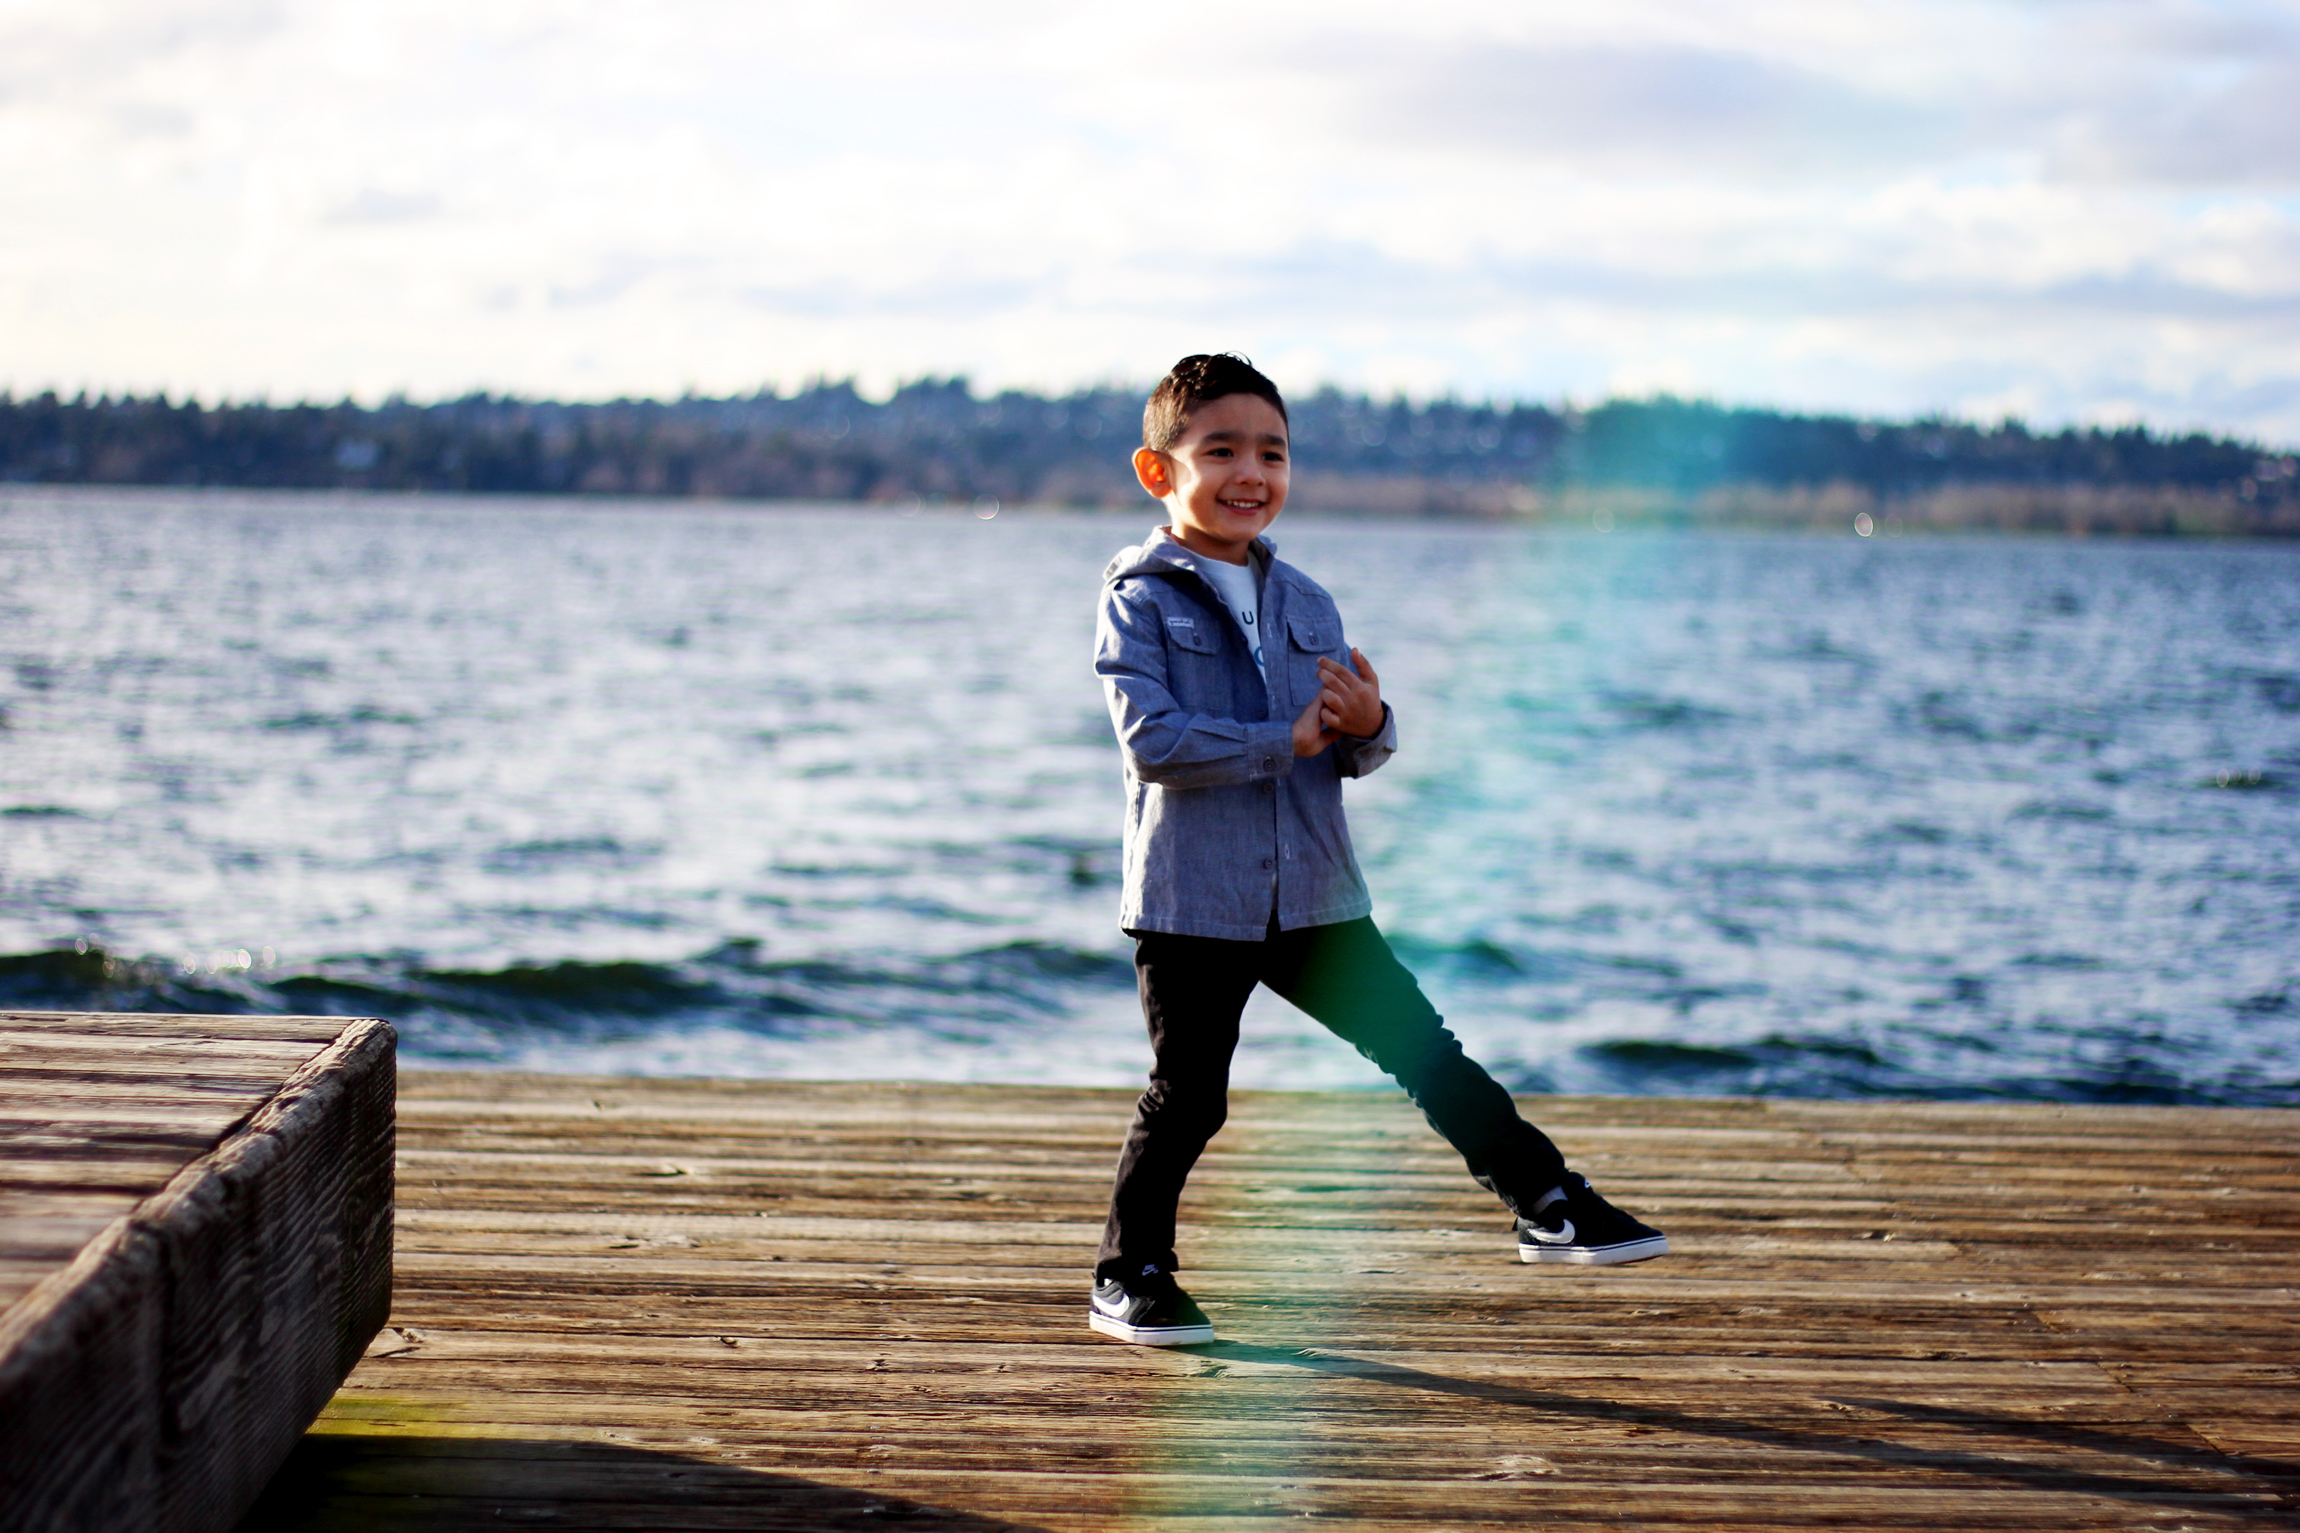 KID STYLE: SUNSET ON THE DOCKS — All Kids Are Gifted